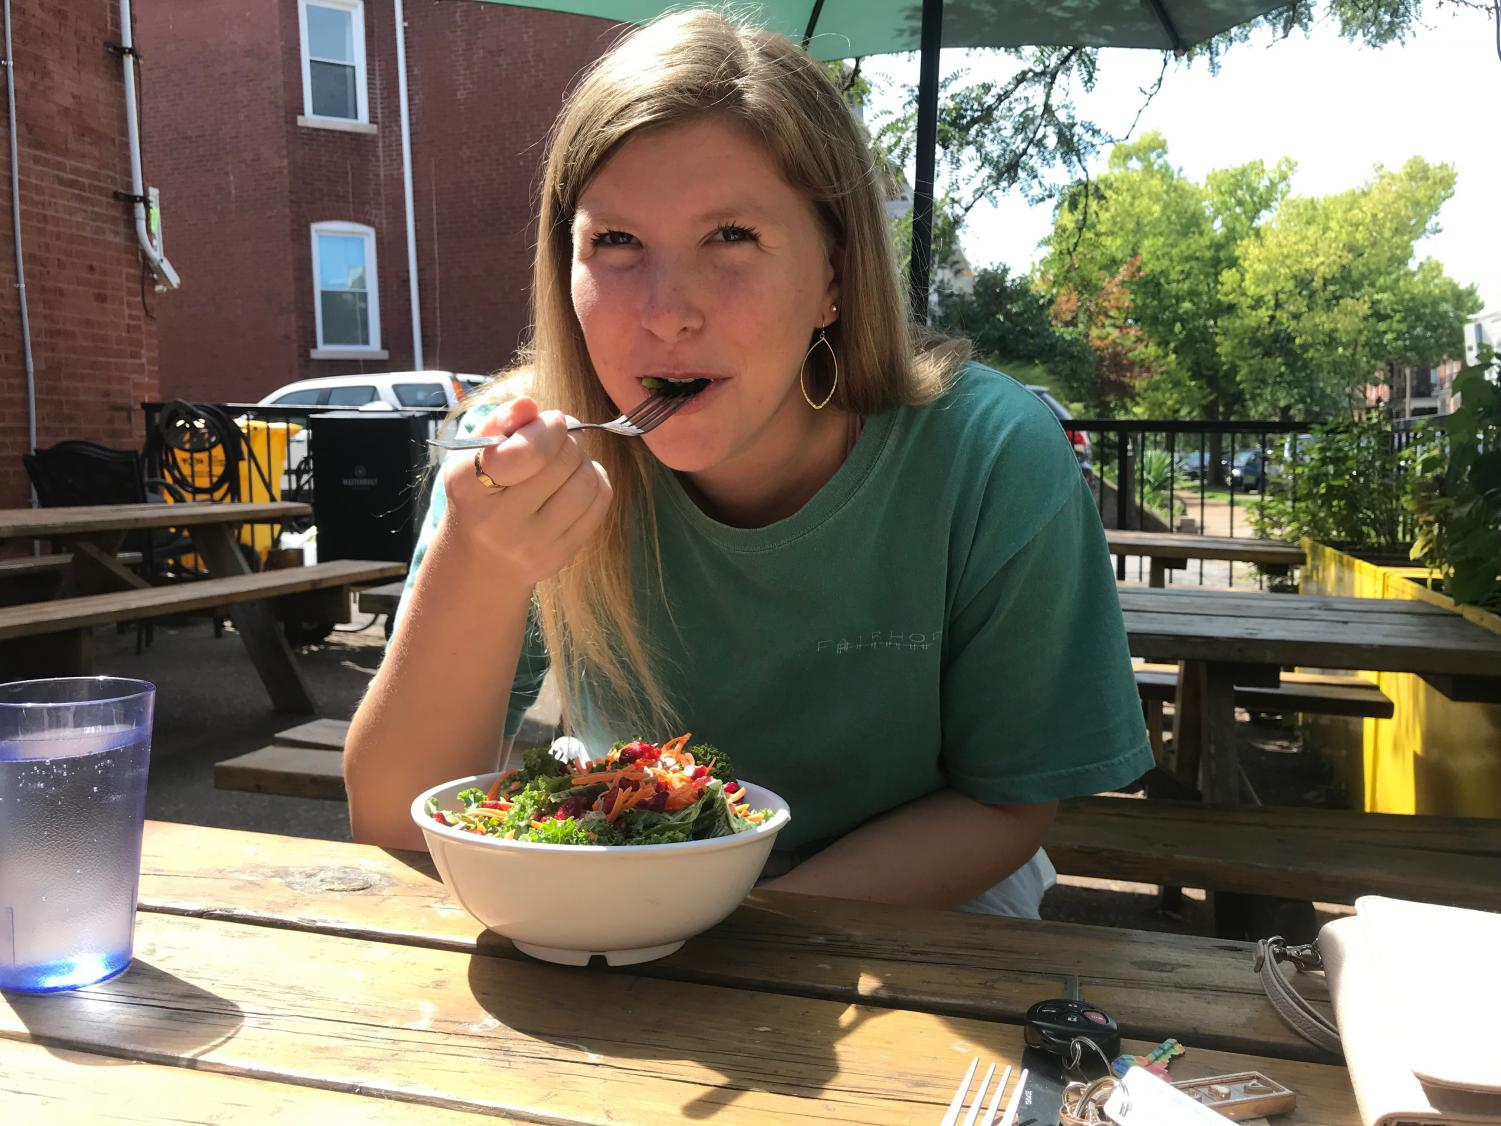 Enjoying the sun on the outdoor patio at Lulu's Local Eatery, senior Quinn Berry enjoys a vegan kale salad.